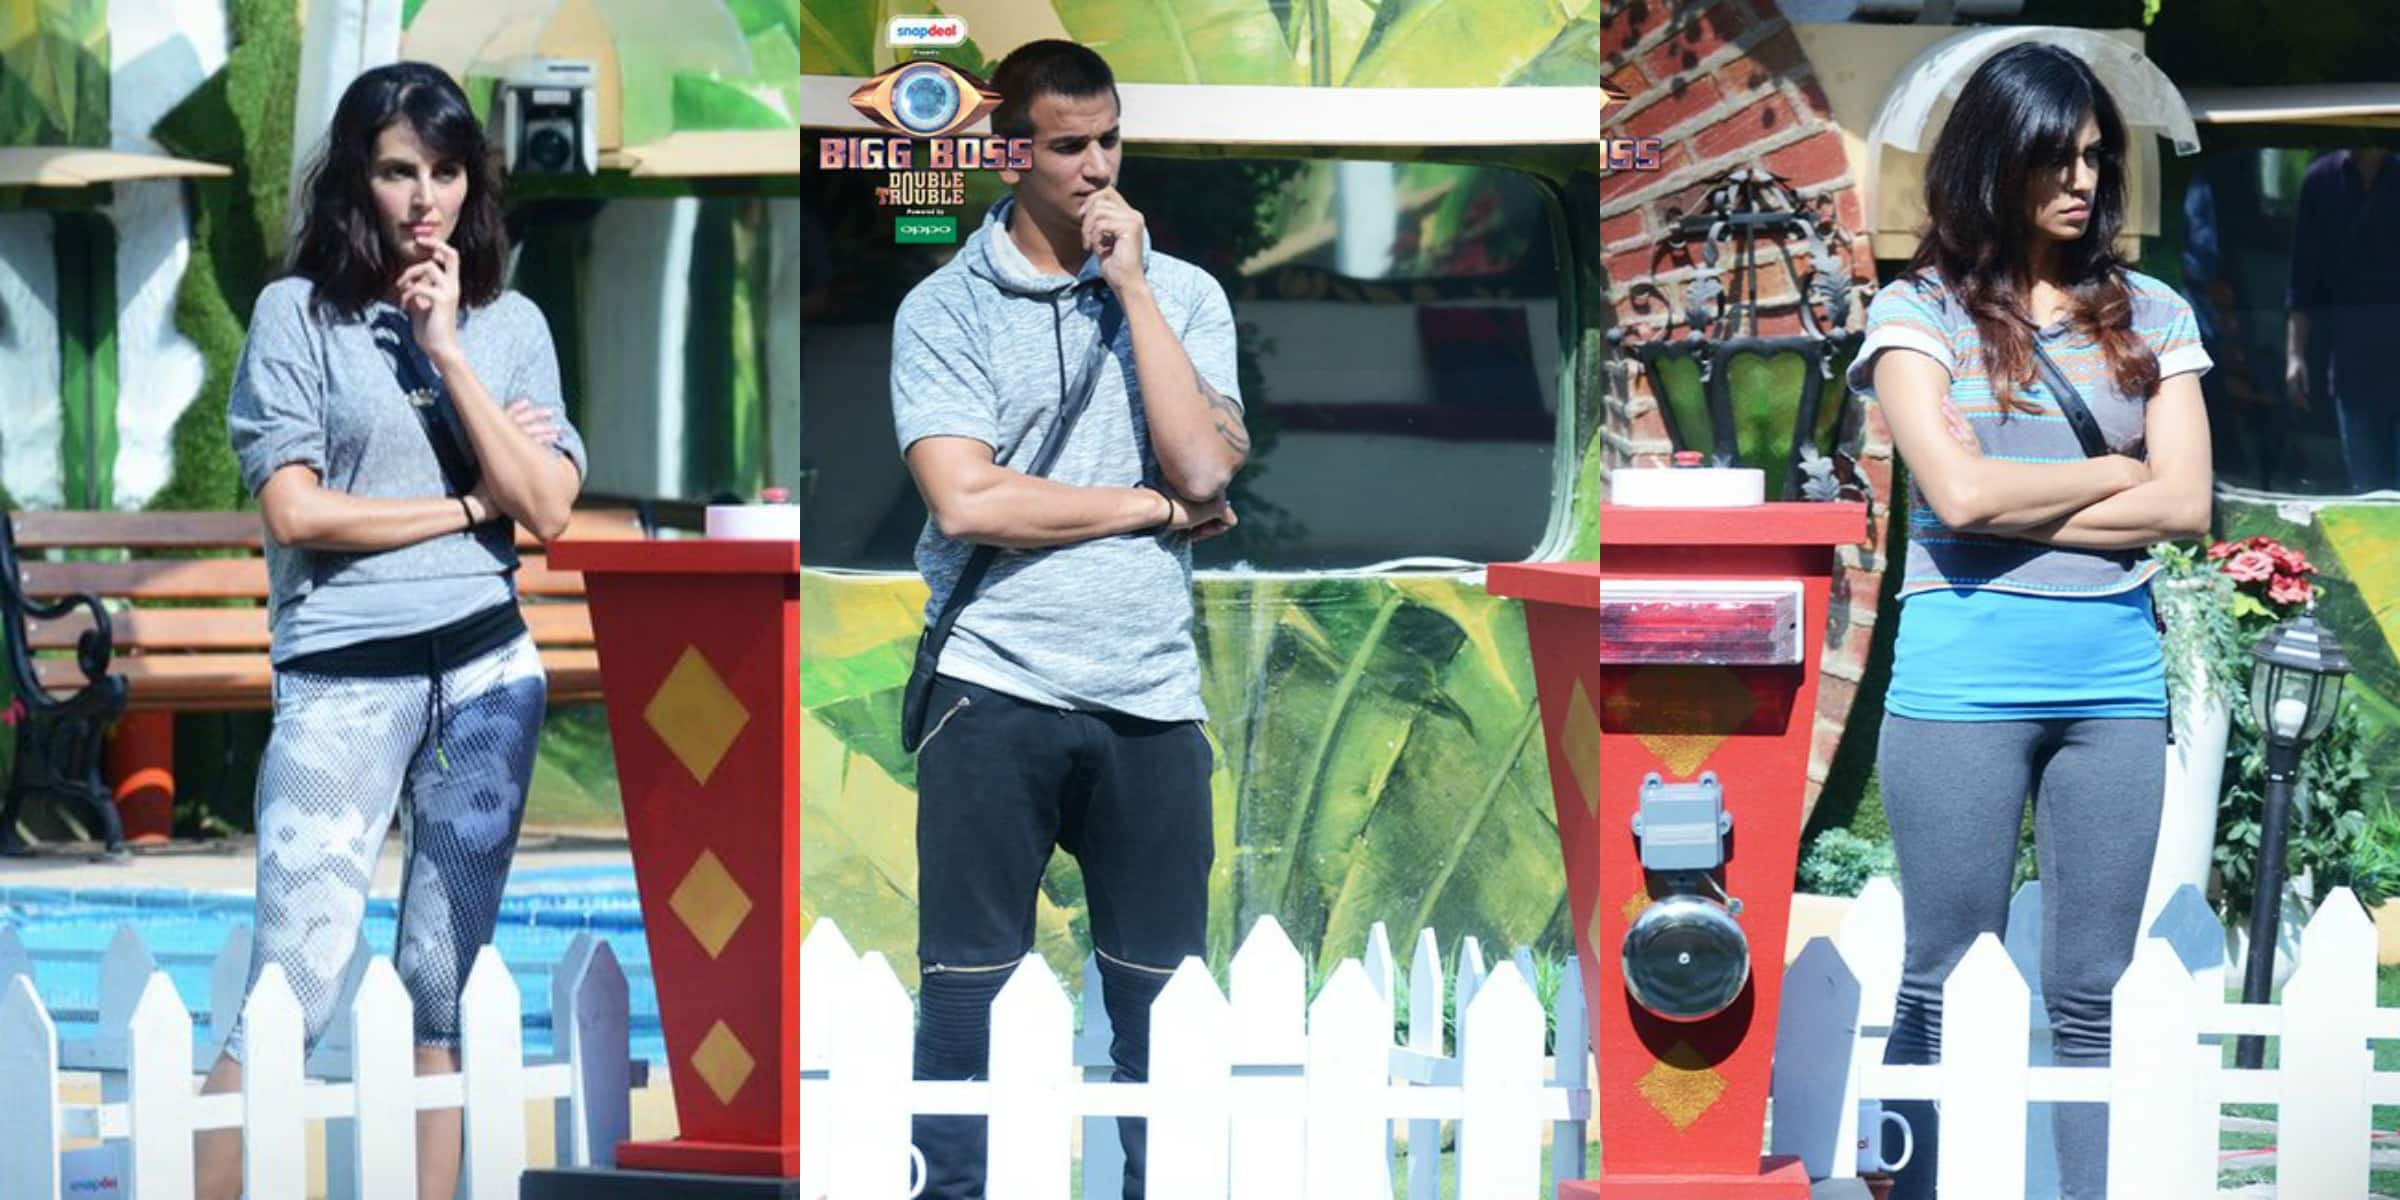 Bigg Boss 9: It's Prince vs Kishwer Now!